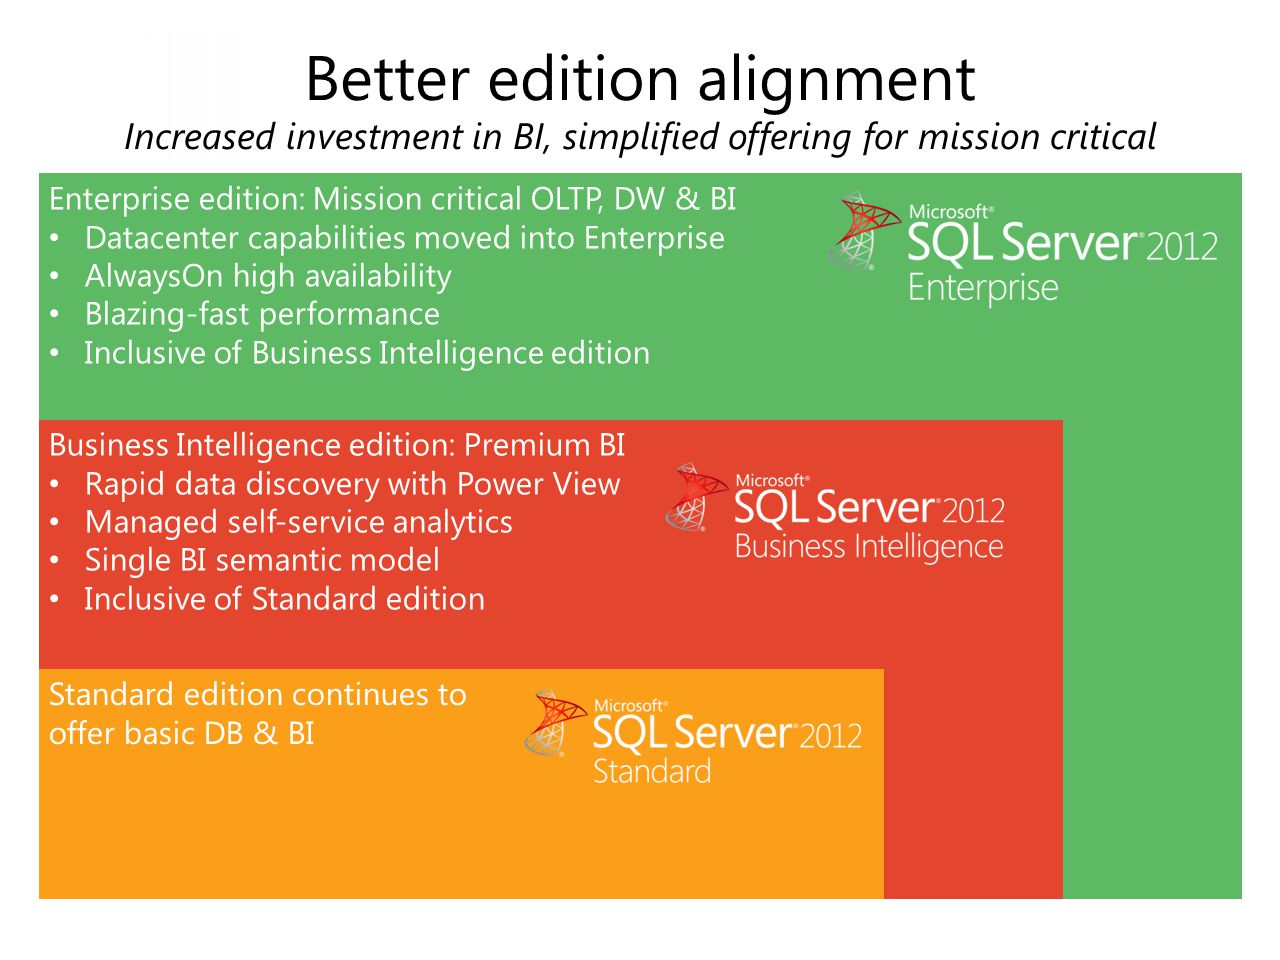 Enterprise edition: Mission critical OLTP, DW & BI Datacenter capabilities moved into Enterprise AlwaysOn high availability Blazing-fast performance I